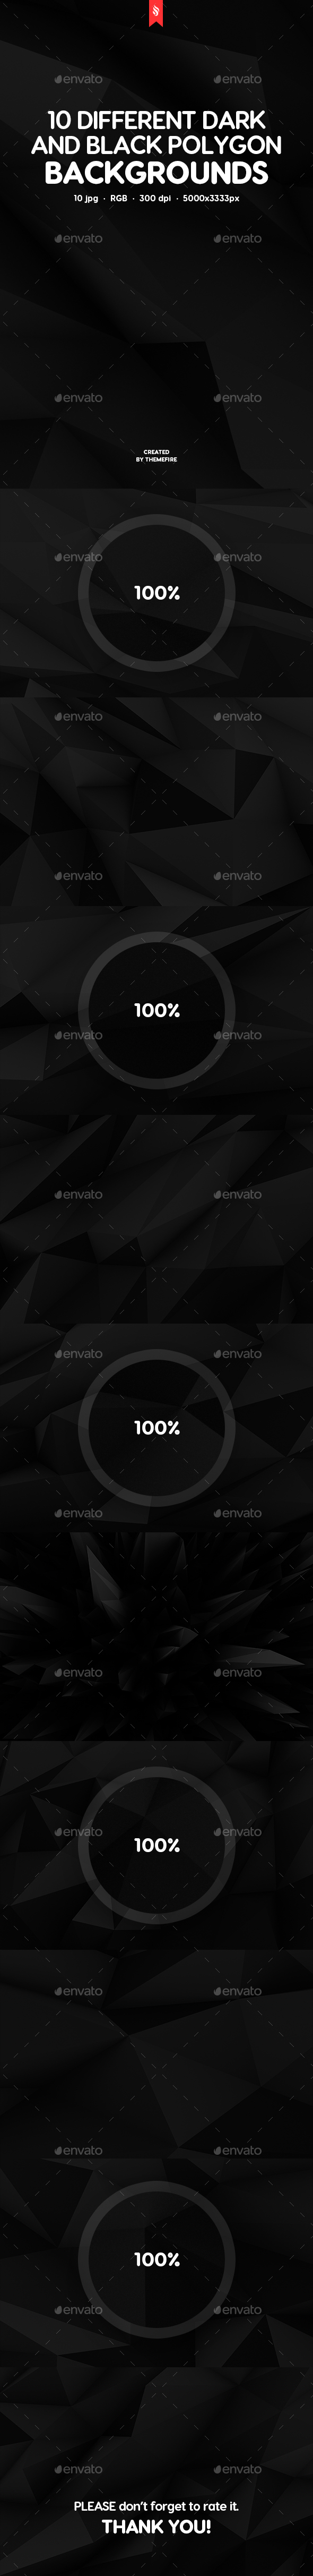 10 Different Dark and Black Polygon Backgrounds - Abstract Backgrounds